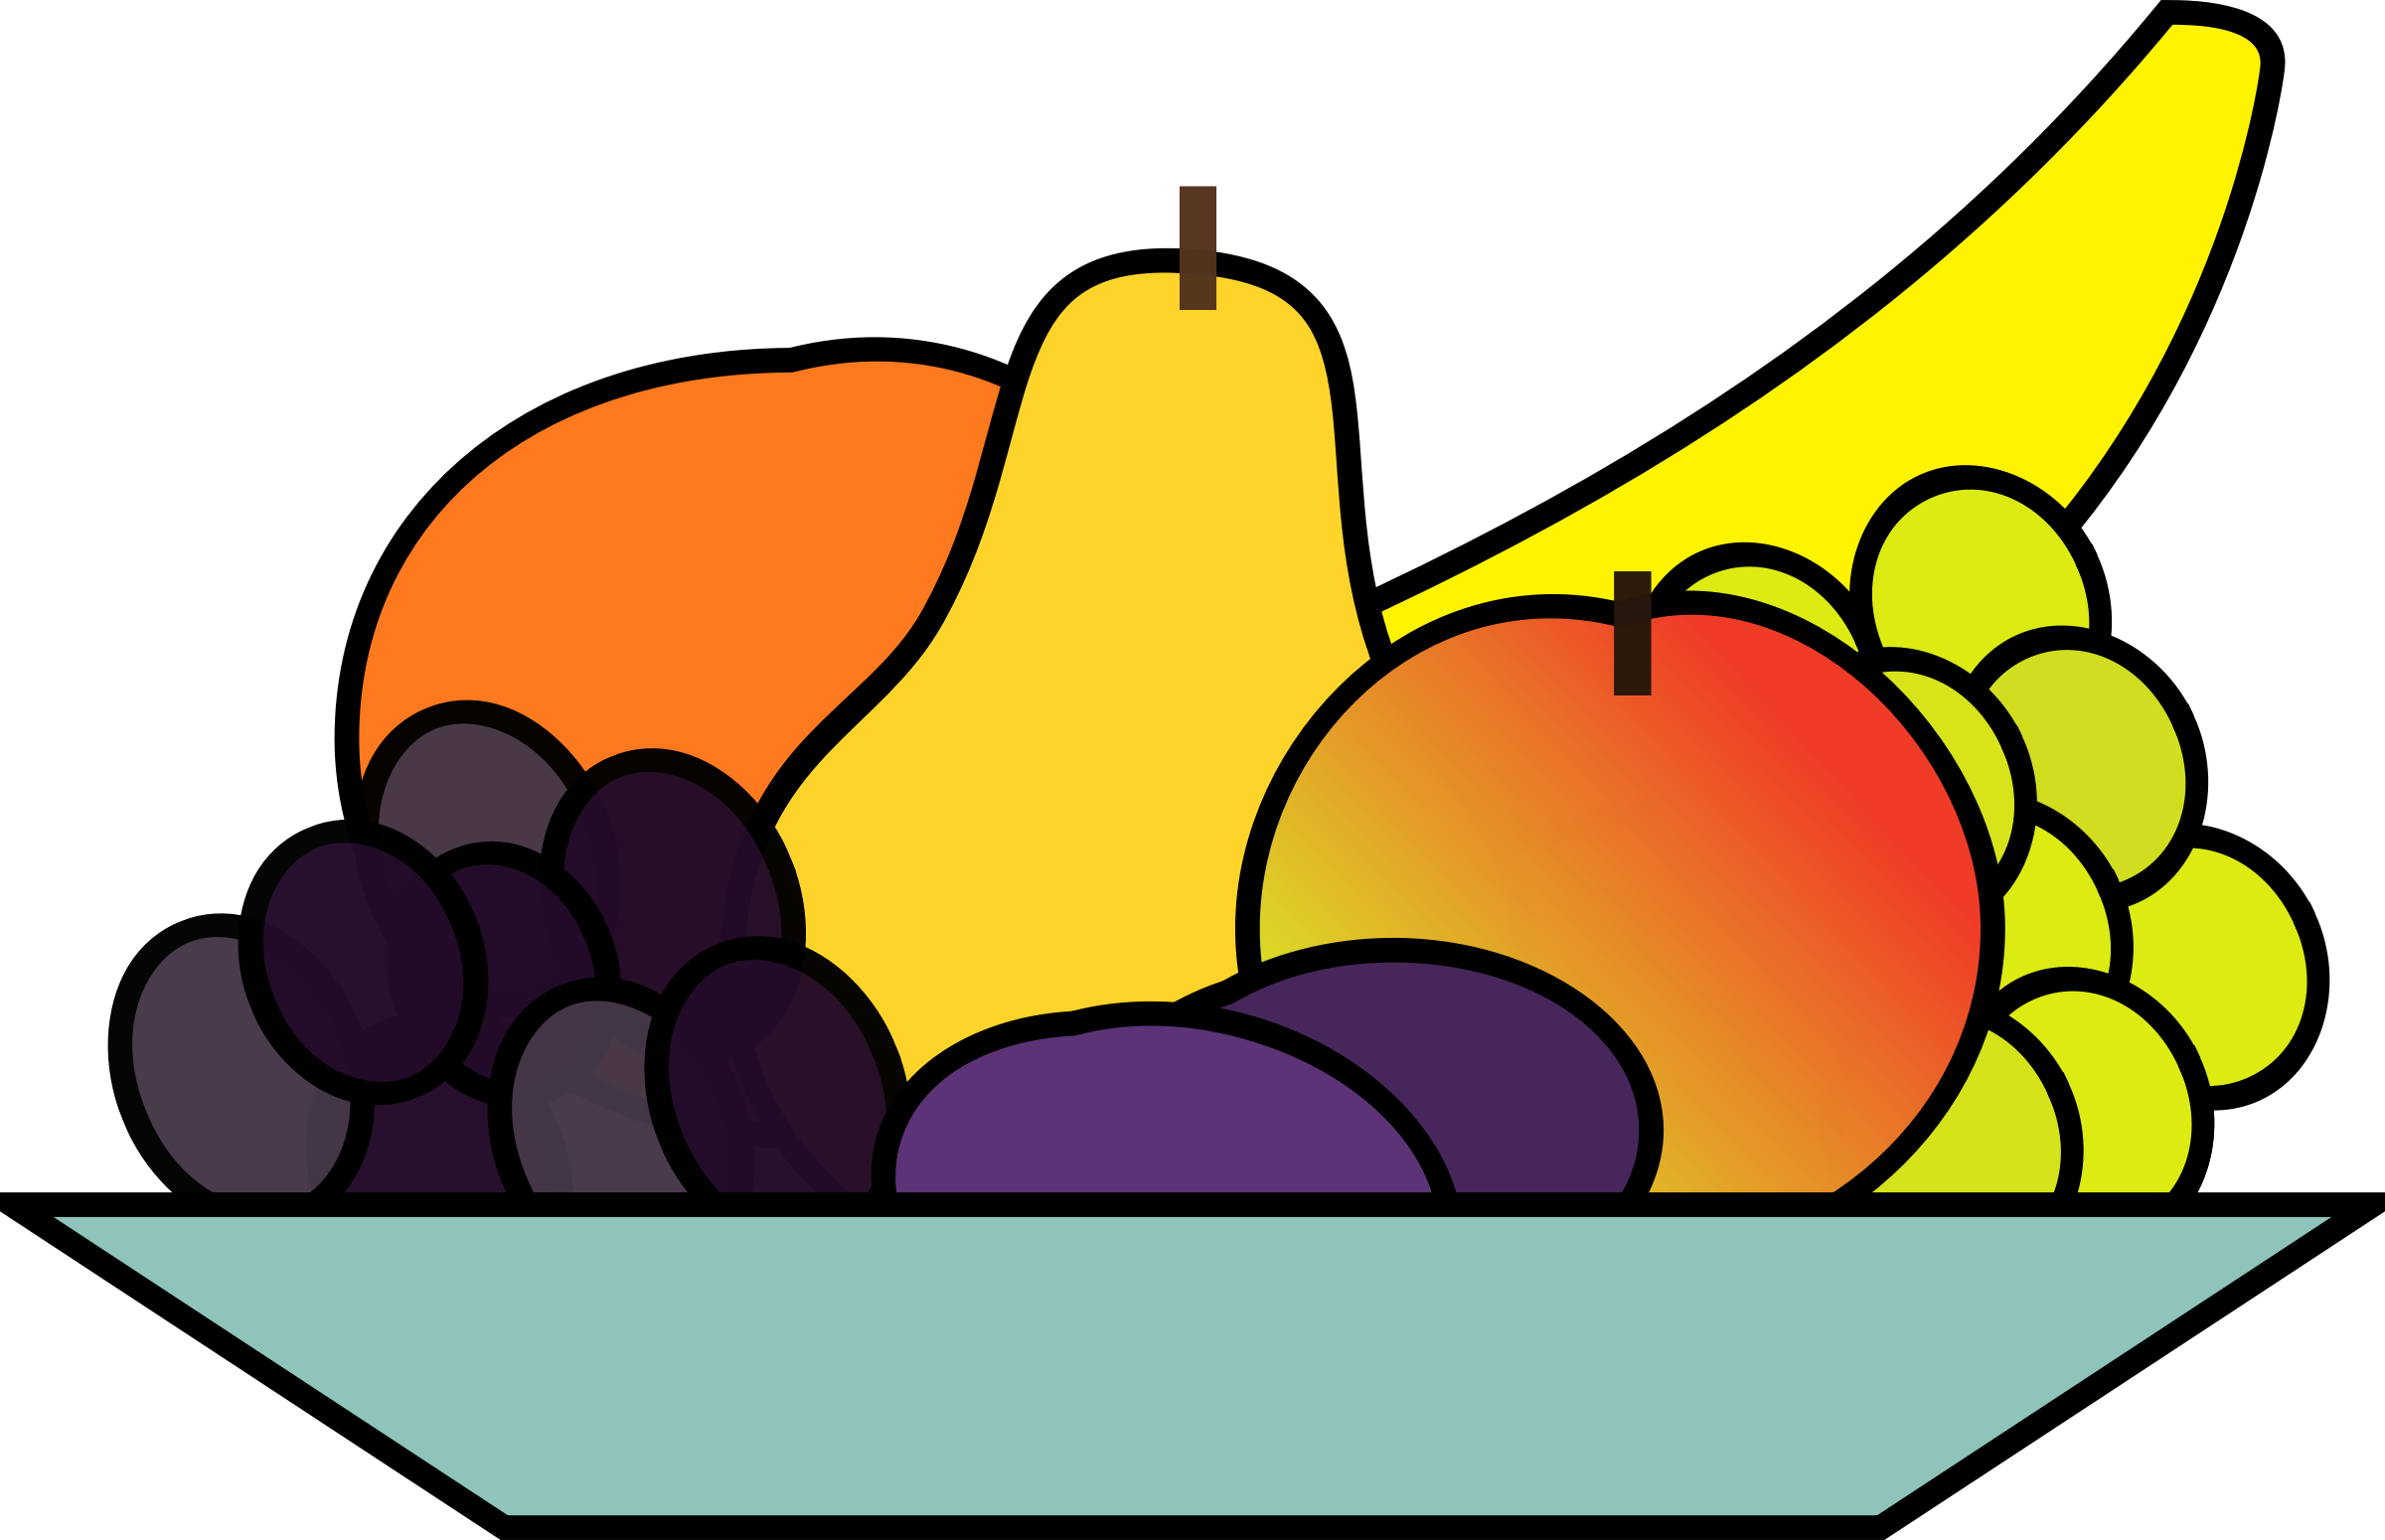 Plate big image png. Fruits clipart fruit platter